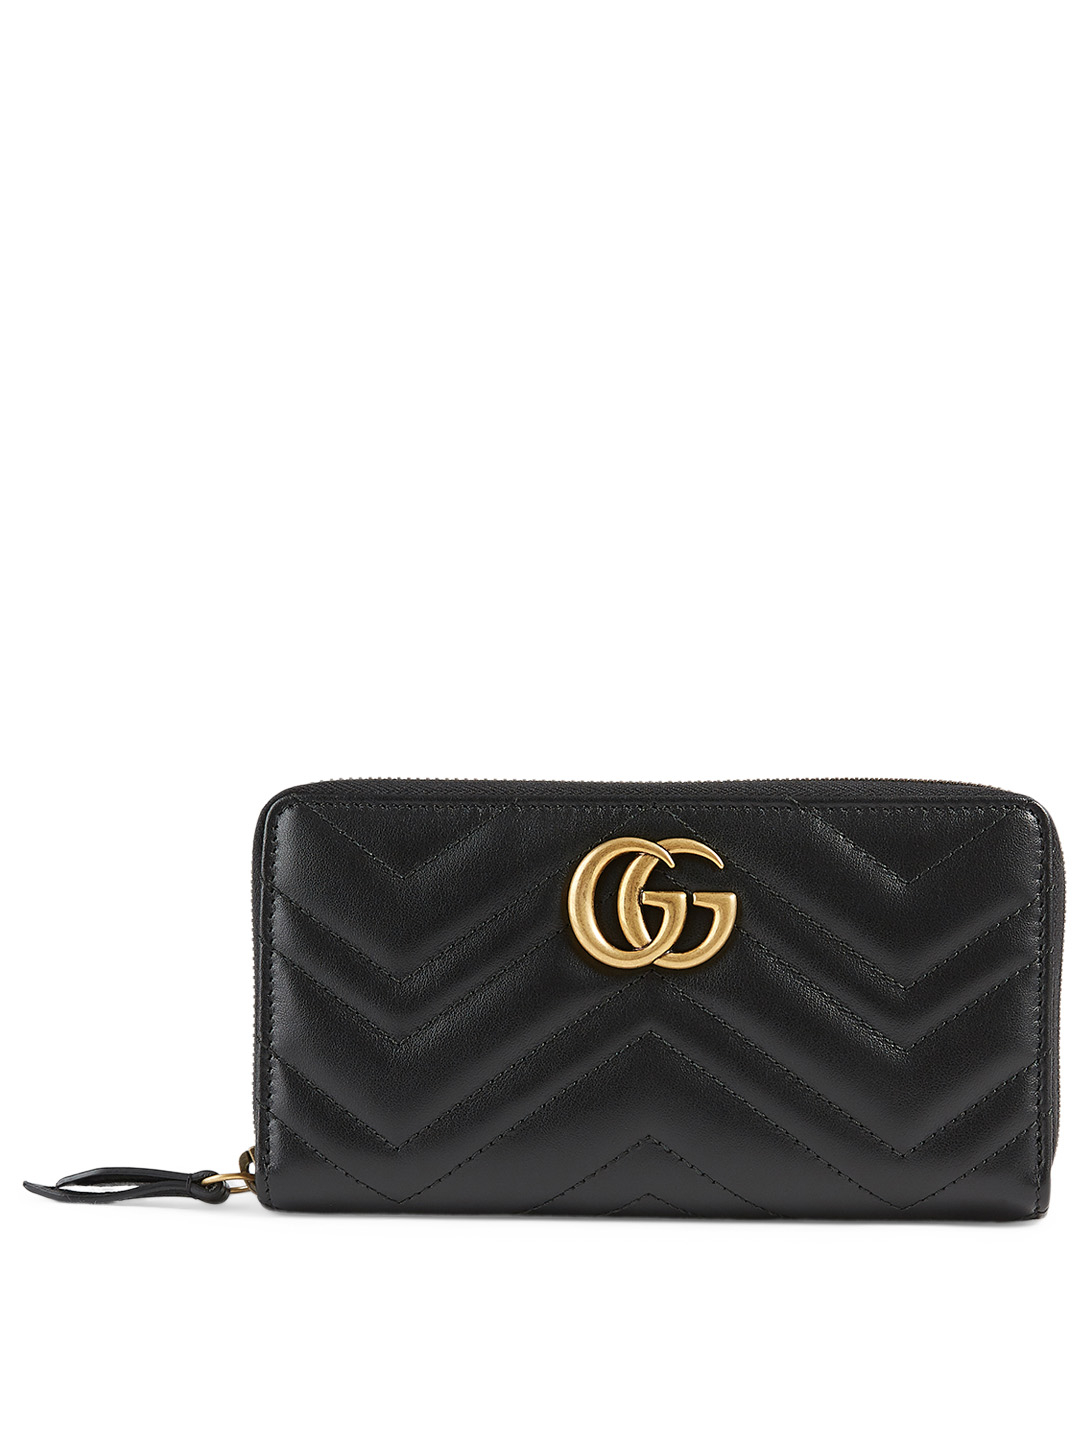 GUCCI GG Marmont Matelassé Leather Wallet Women's Black